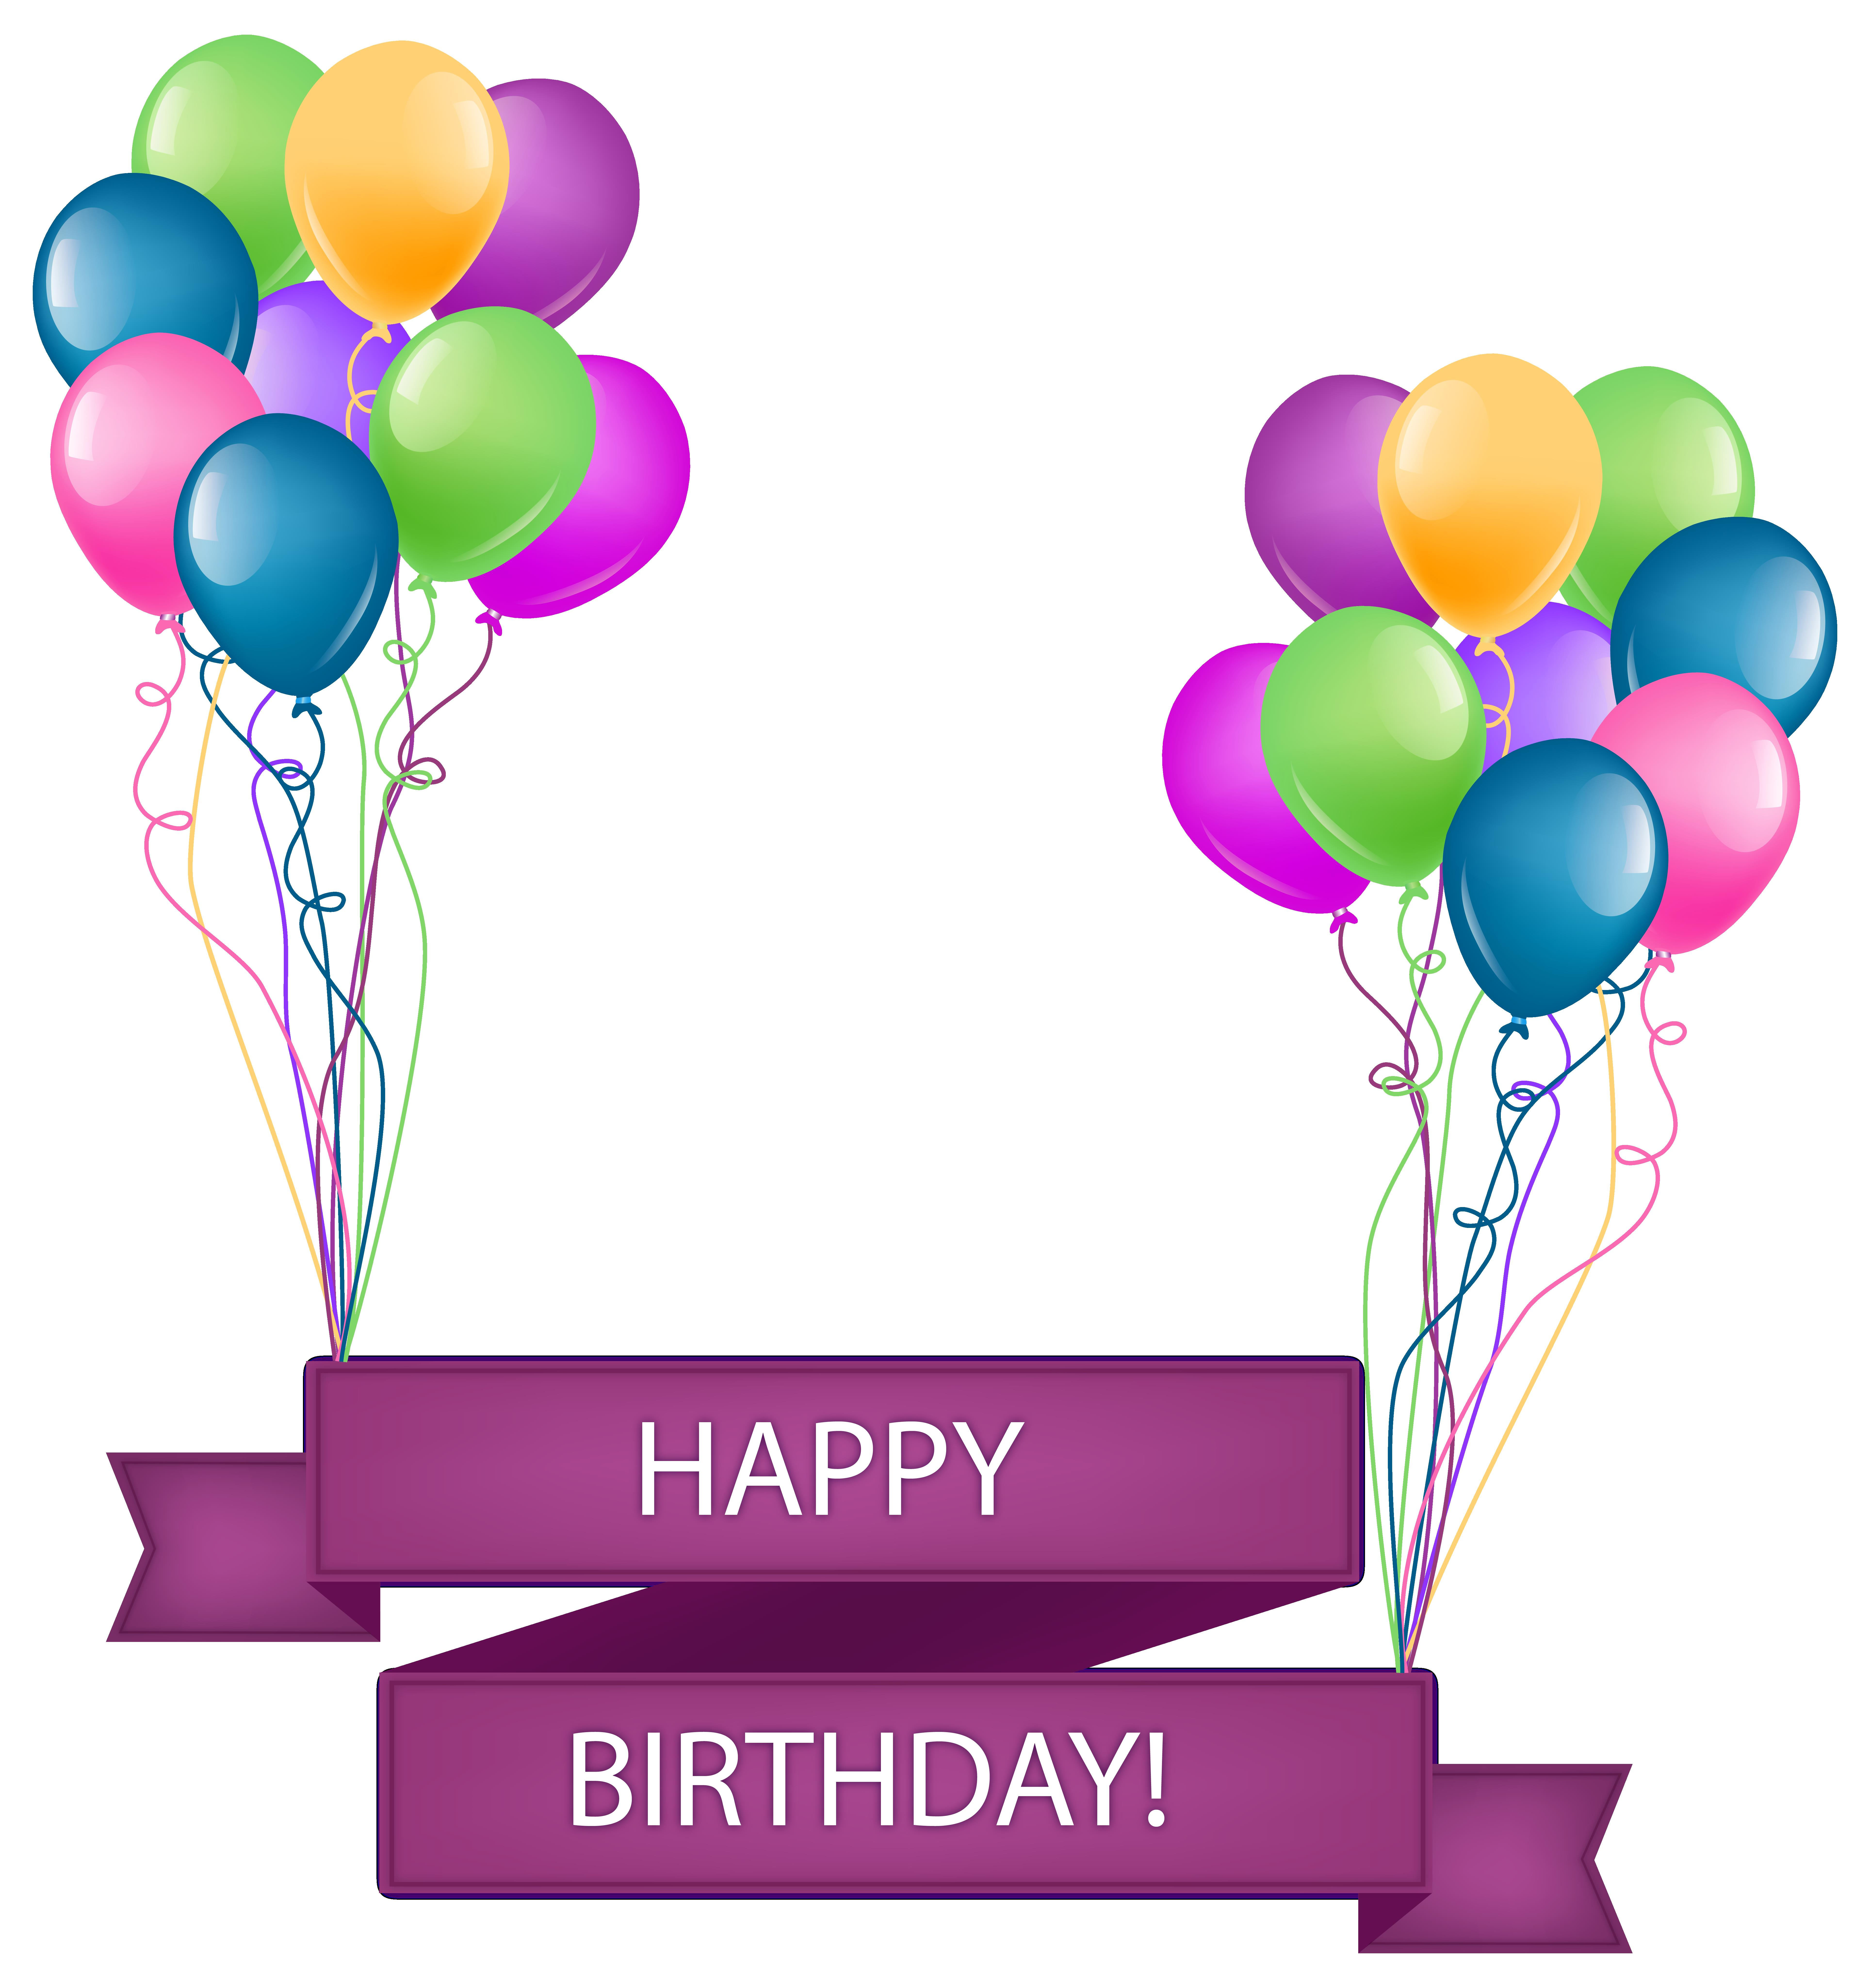 birthday frame clipart ; 0ba9a91ec25619c1d04664aacfc3d879_happy-birthday-banner-with-balloons-transparent-png-clip-art-image-happy-birthday-frame-clipart-png_7710-8197